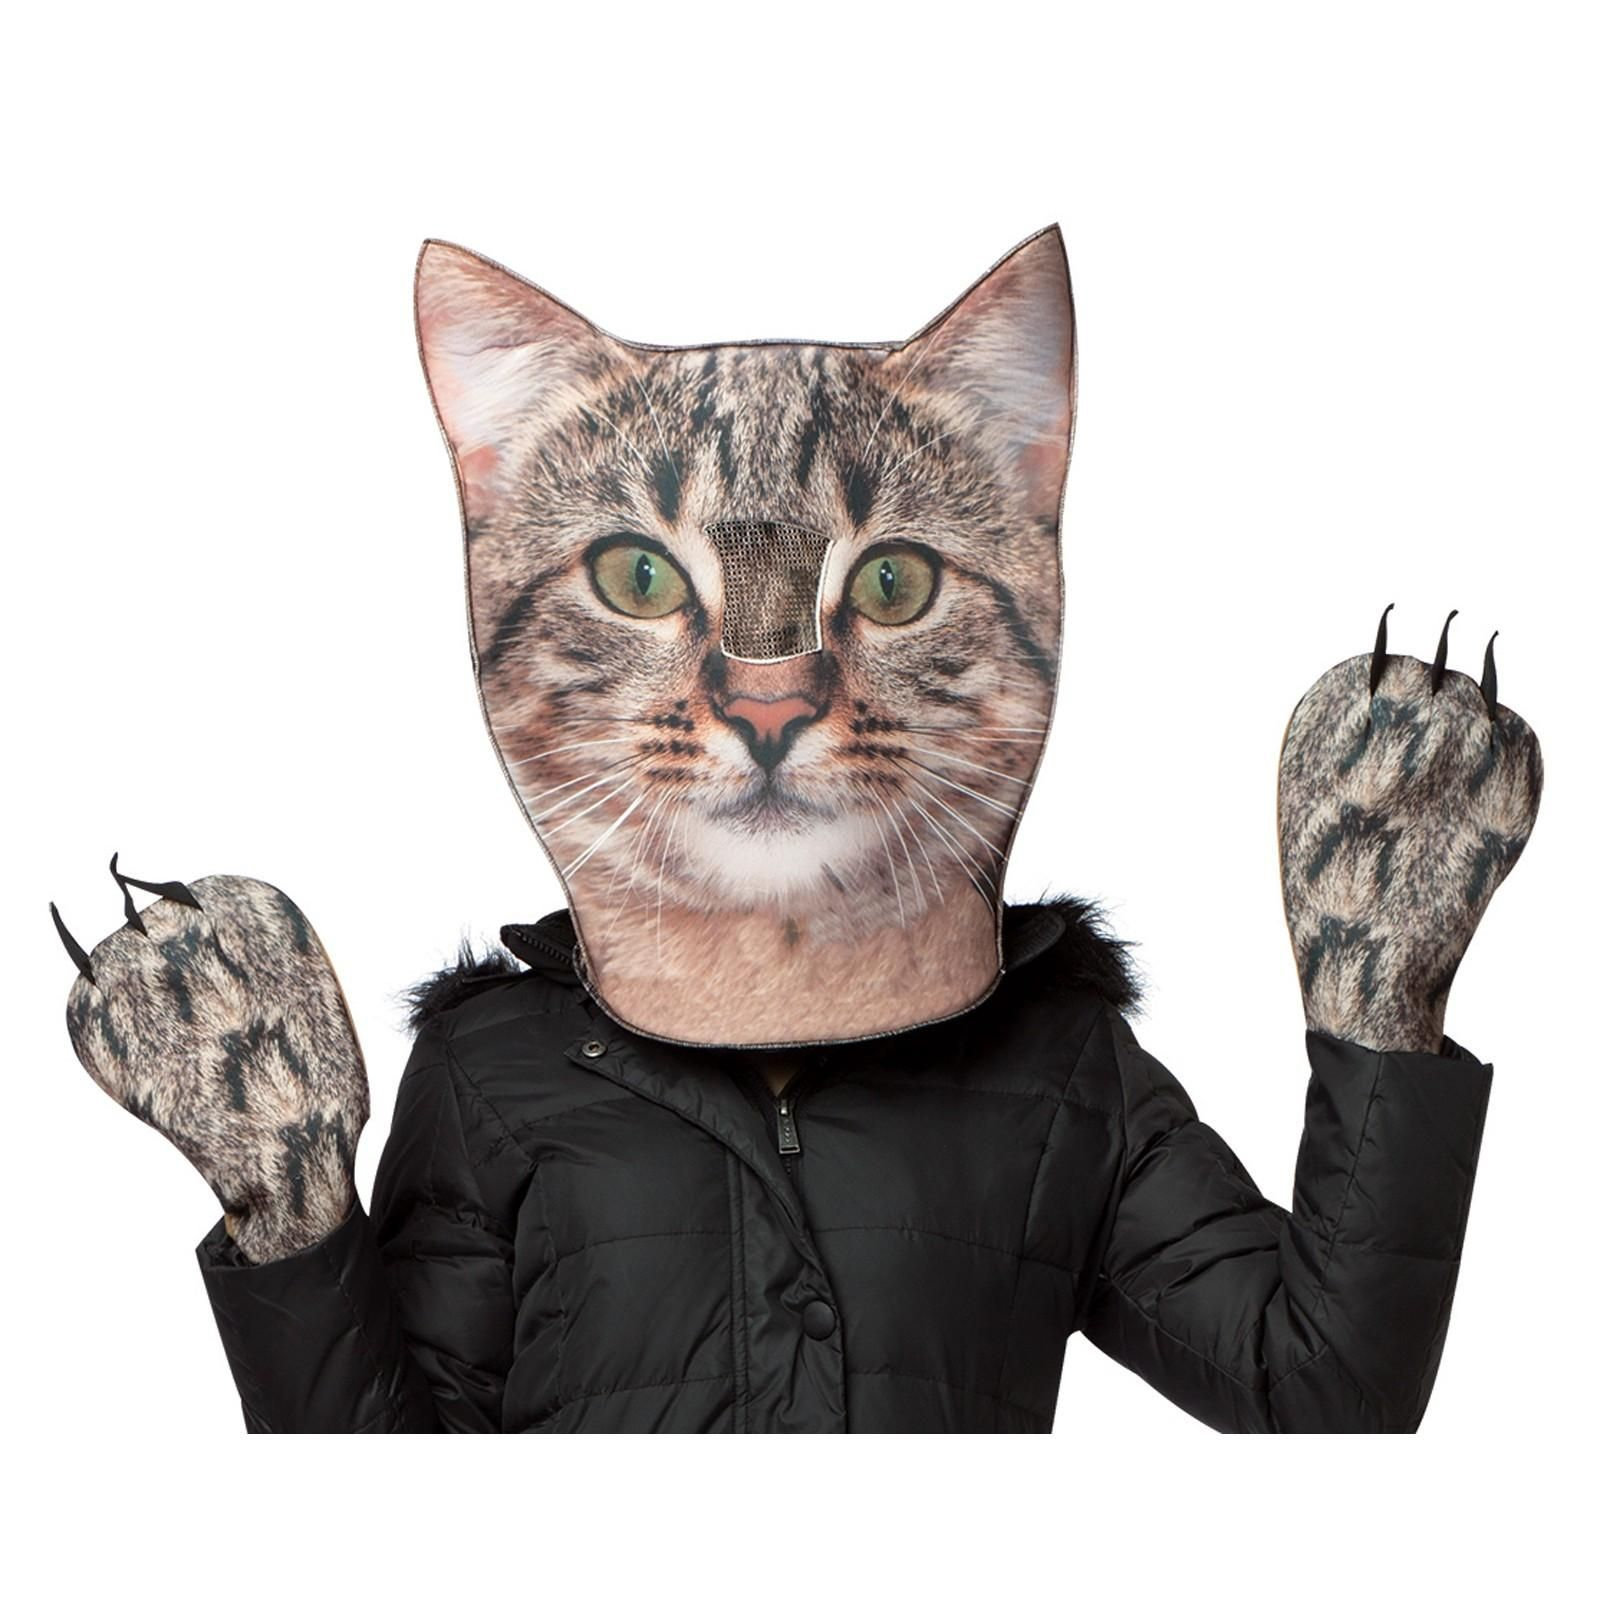 Buy Adult Cat Head u0026 Paws Costume (for ...  sc 1 st  Pinterest & Adult Cat Head u0026 Paws Costume